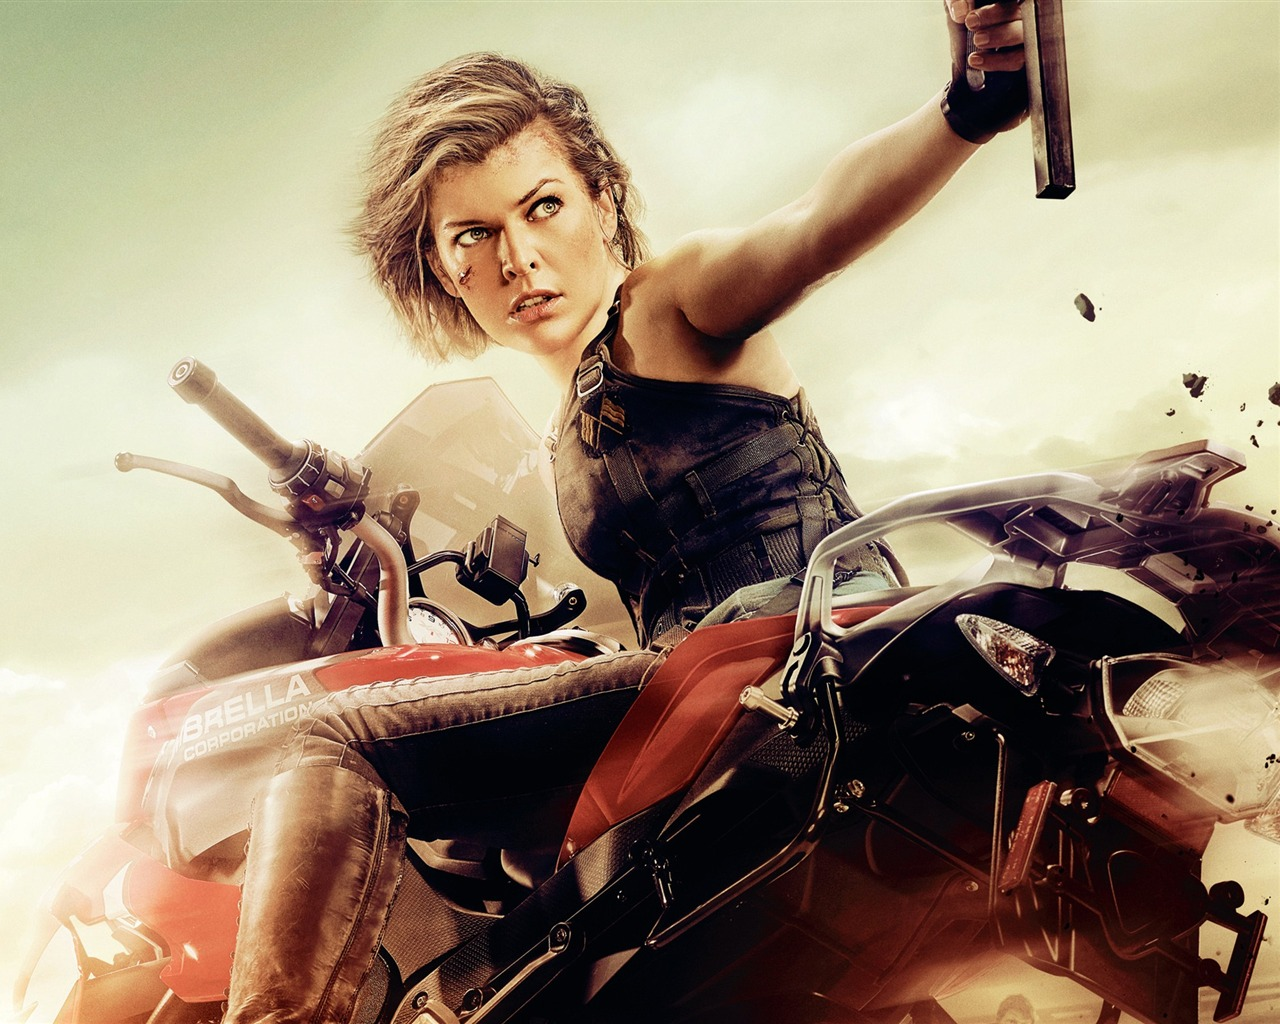 Milla jovovich resident evil the final chapter 2016 movie - Resident evil the final chapter wallpaper ...